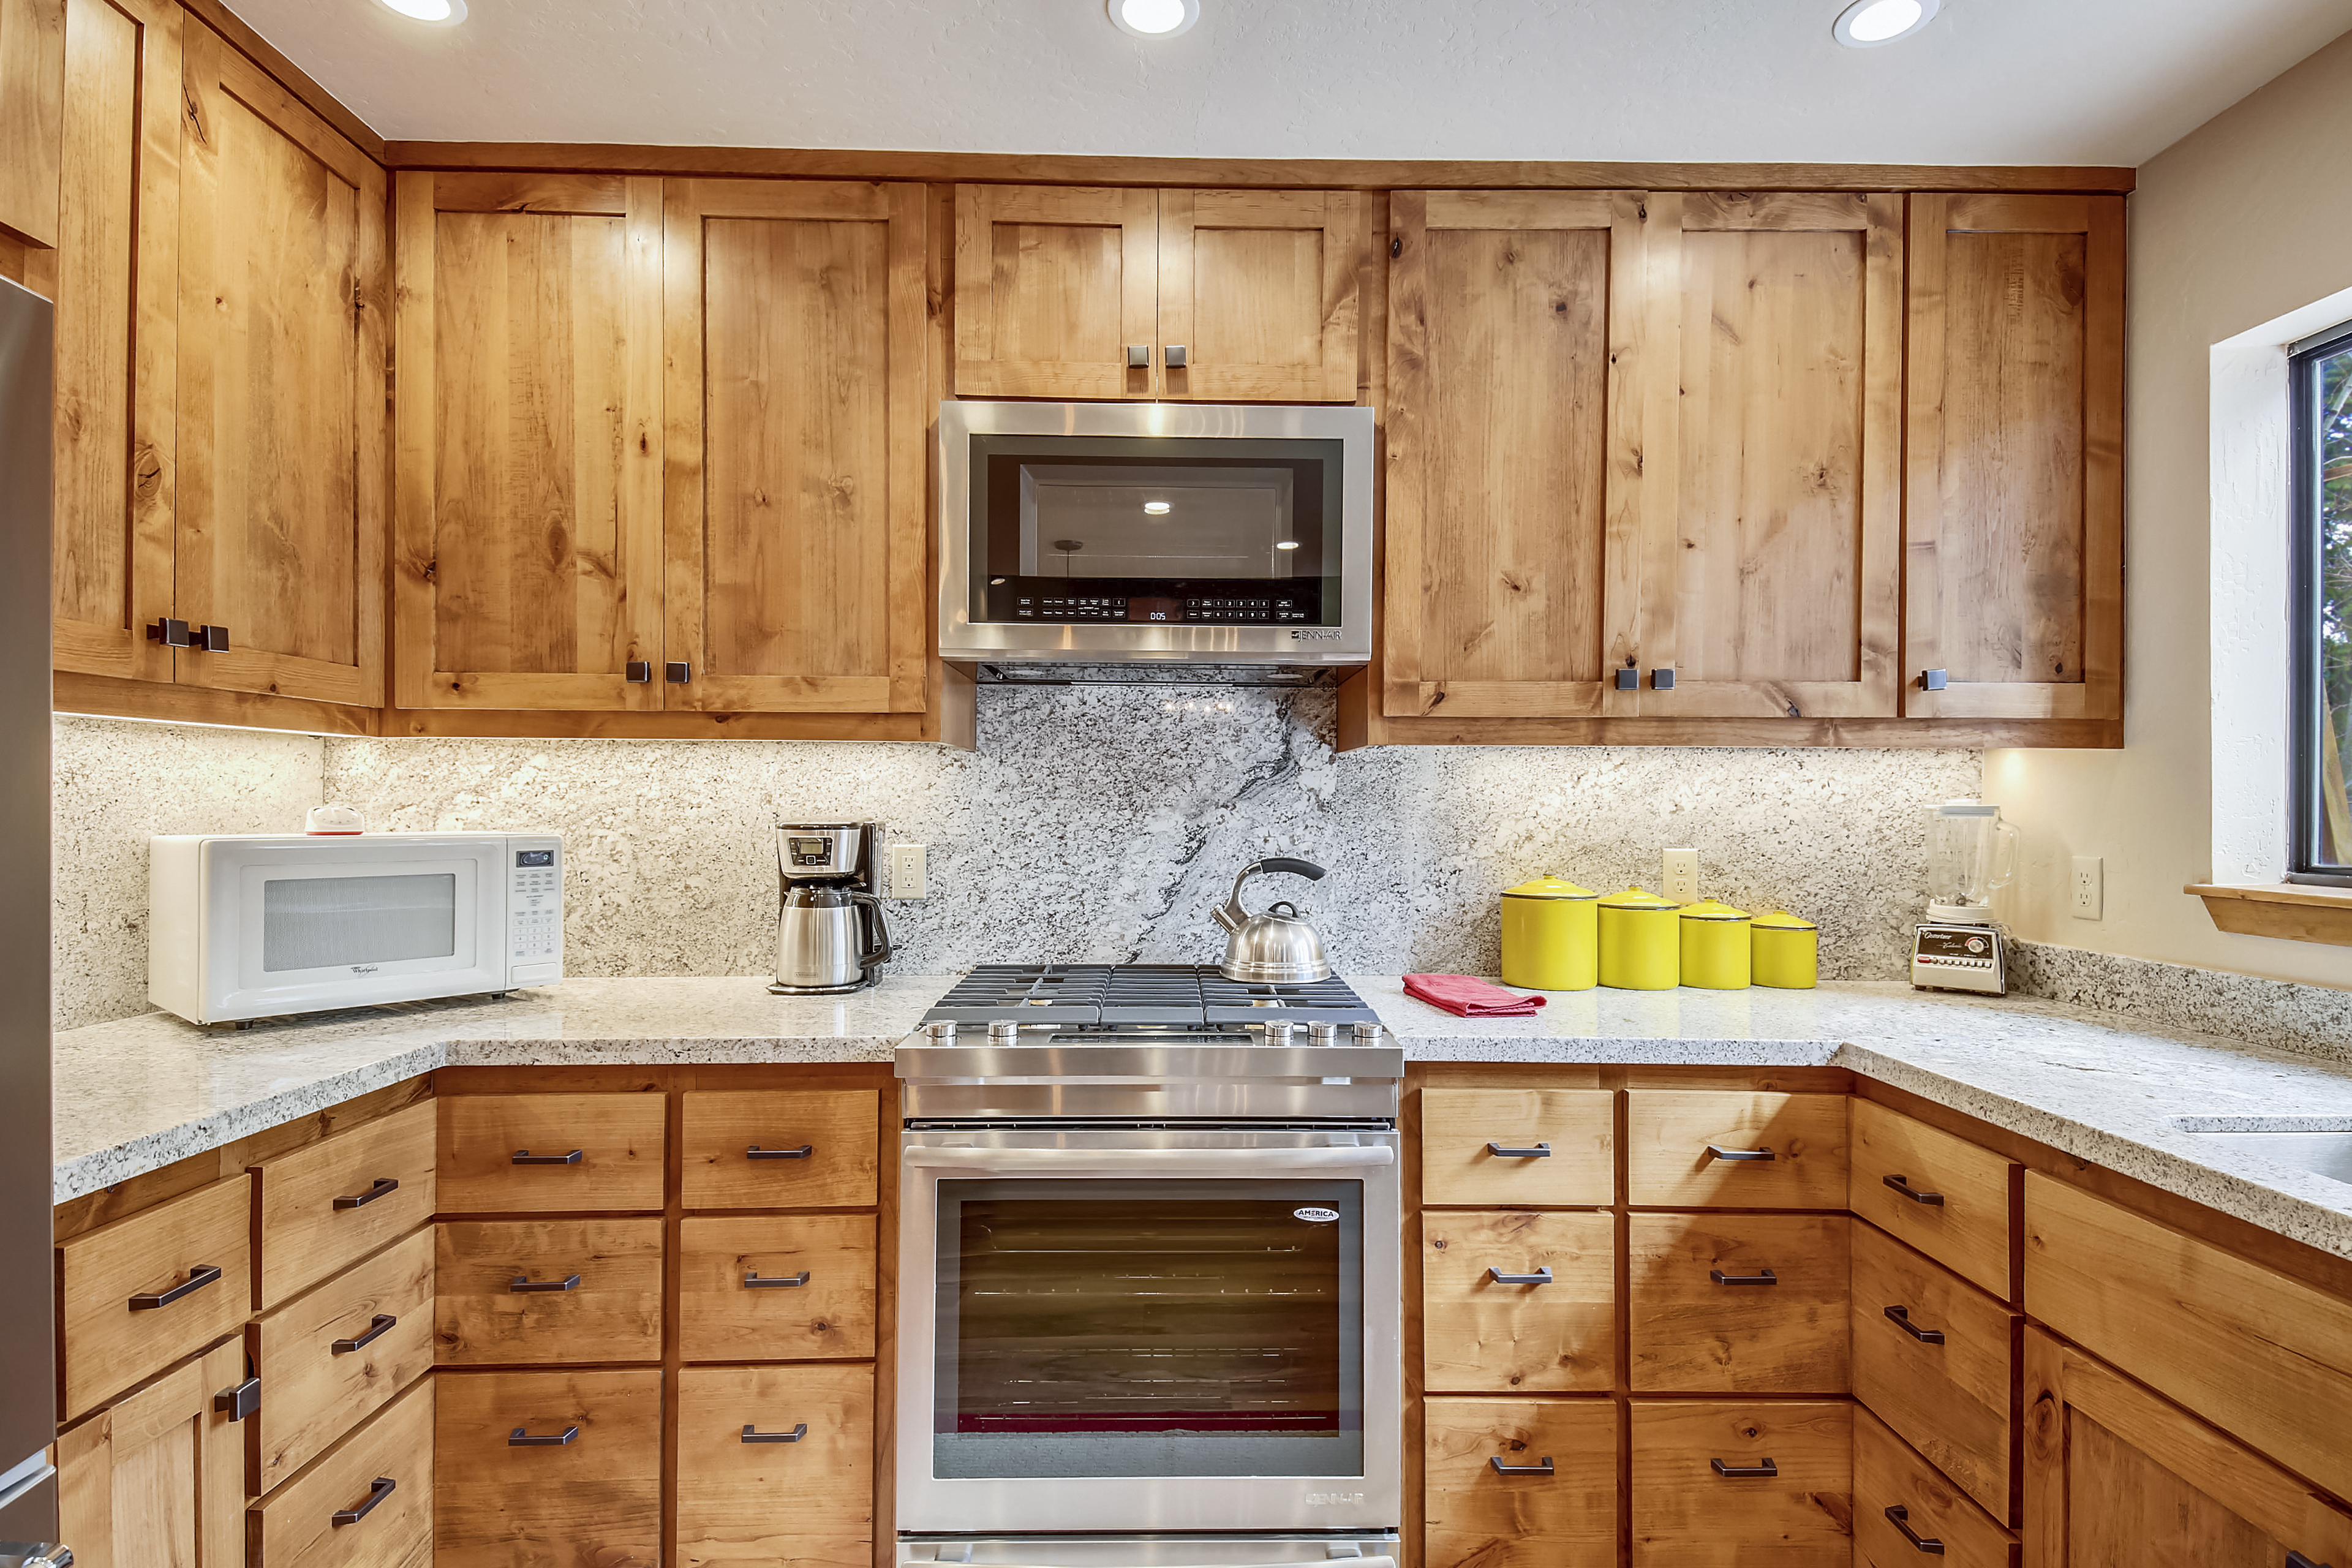 Brand new kitchen and appliances